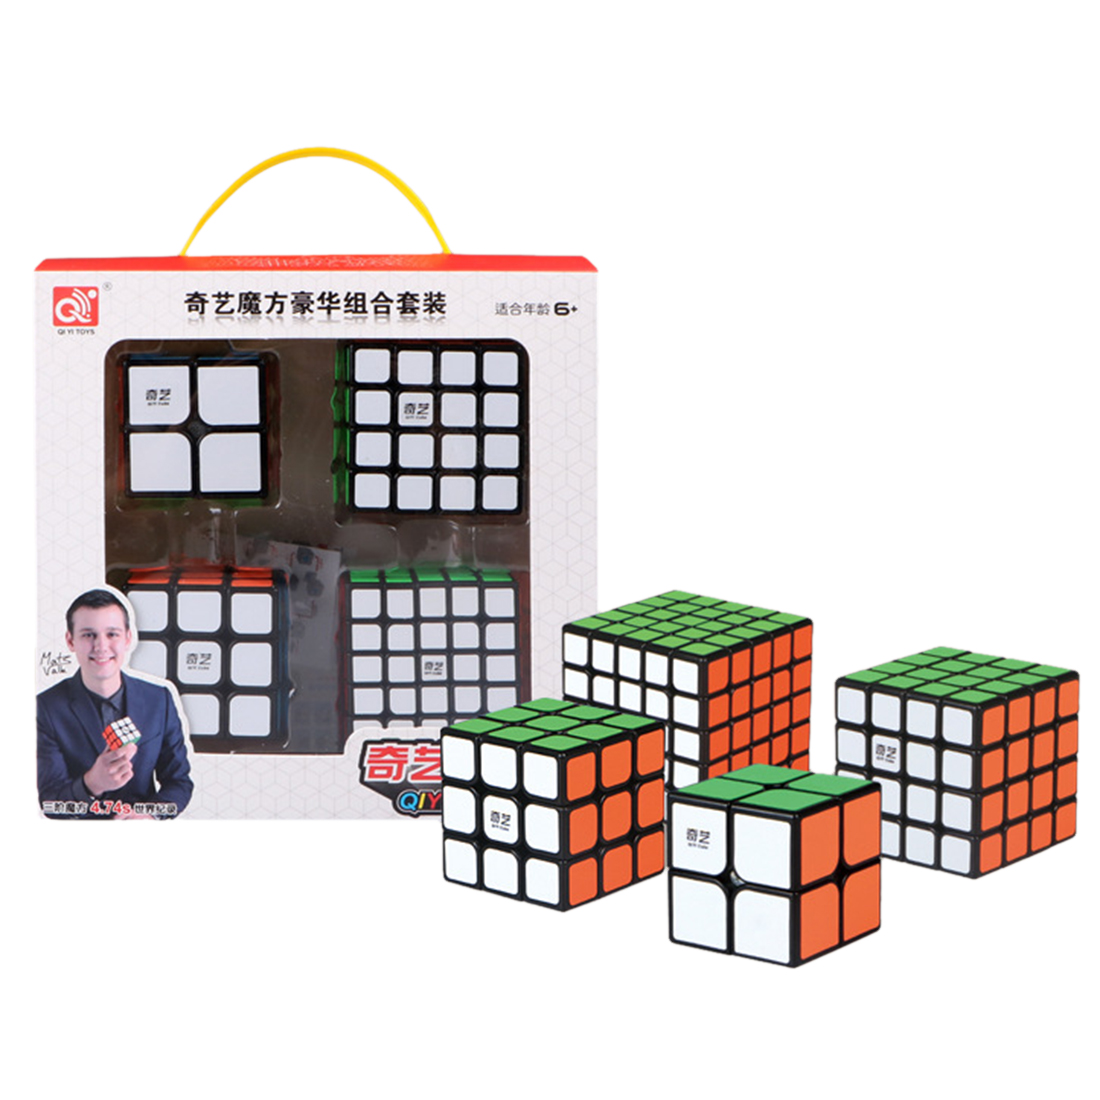 Qiyi Bundle Black Knight 2x2 3x3 4x4 5x5 Speed Cube Set Cube Pack Puzzle Speed Cube Magic Fidget Toy Gift Box Christmas Gifts z cube bundle black knight 2x2 3x3 4x4 5x5 speed cube set cube pack puzzle carbon fiber cube magic fidget toy gift box